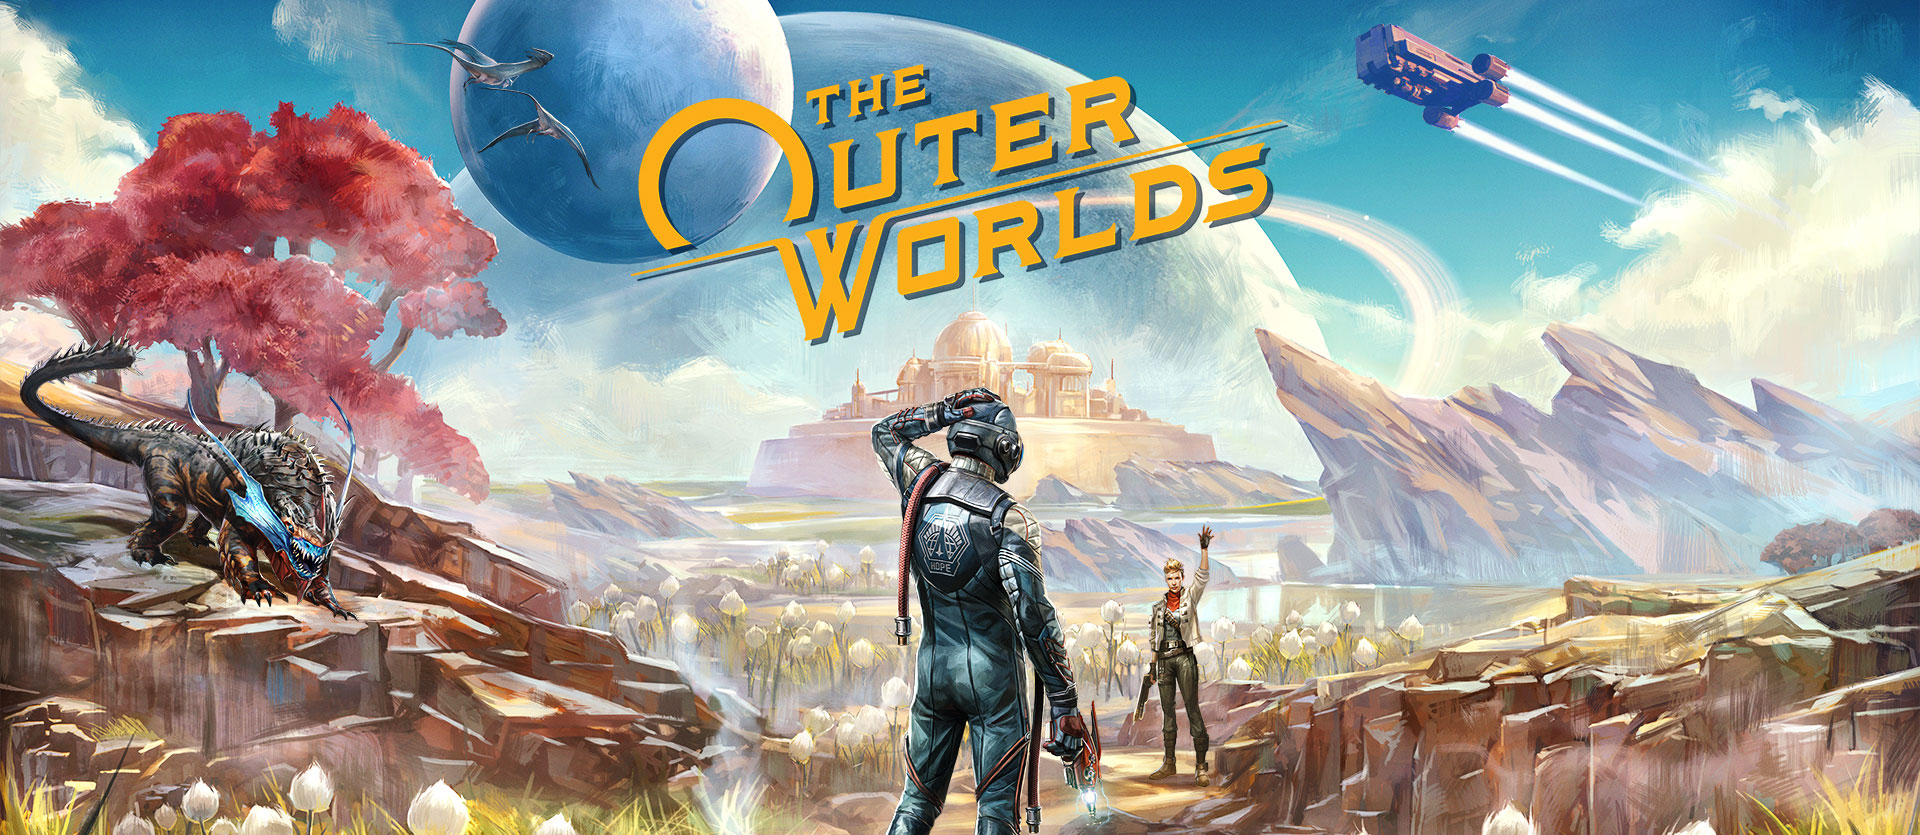 The Outer Worlds,女人跟外星球上感到困惑的角色打招呼